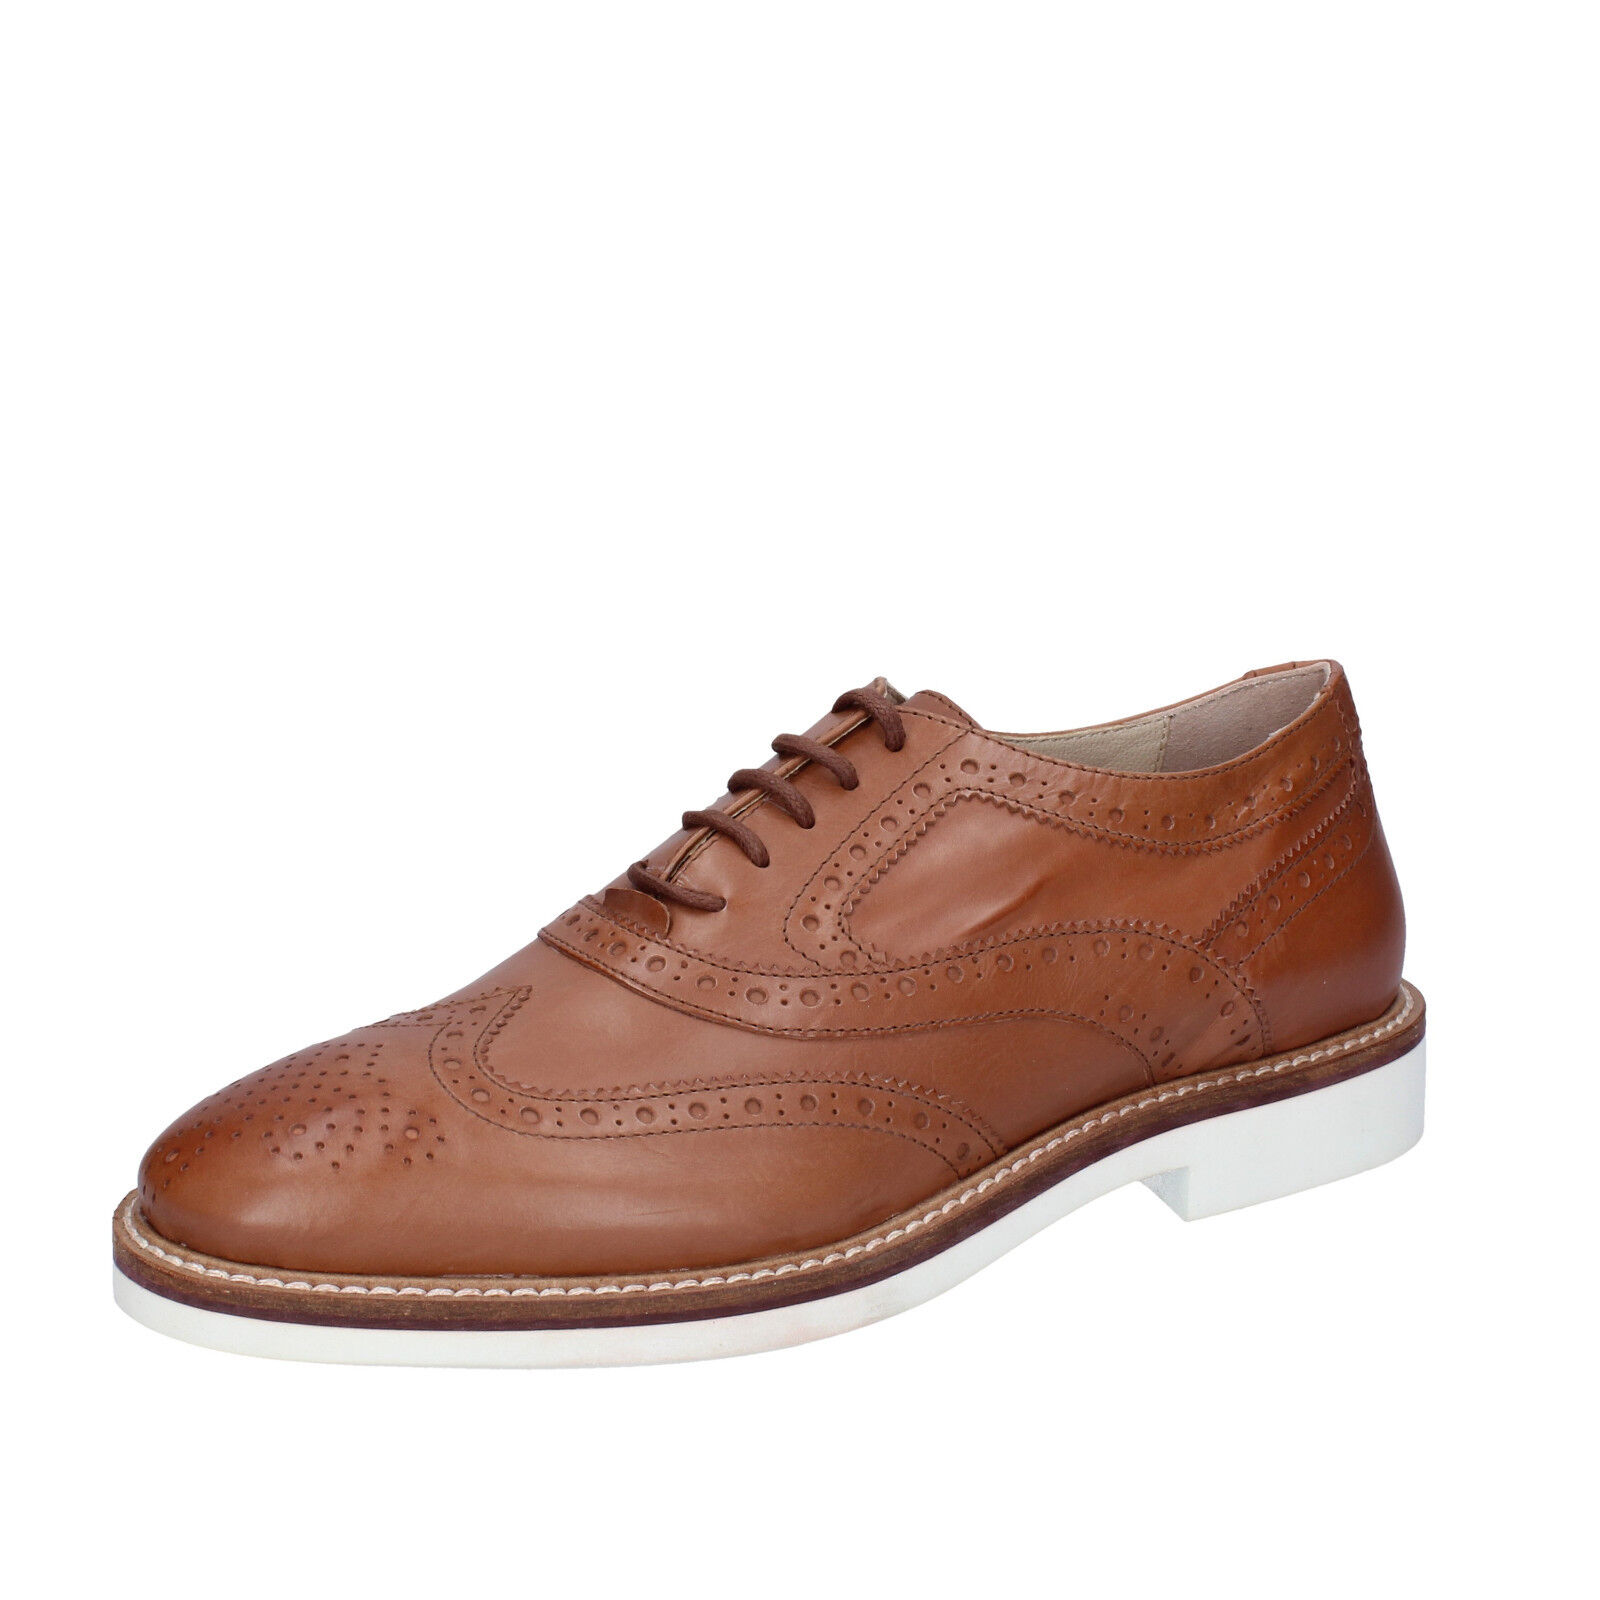 Men's shoes K852 & SON 9 (EU 42) elegant brown leather BT923-42